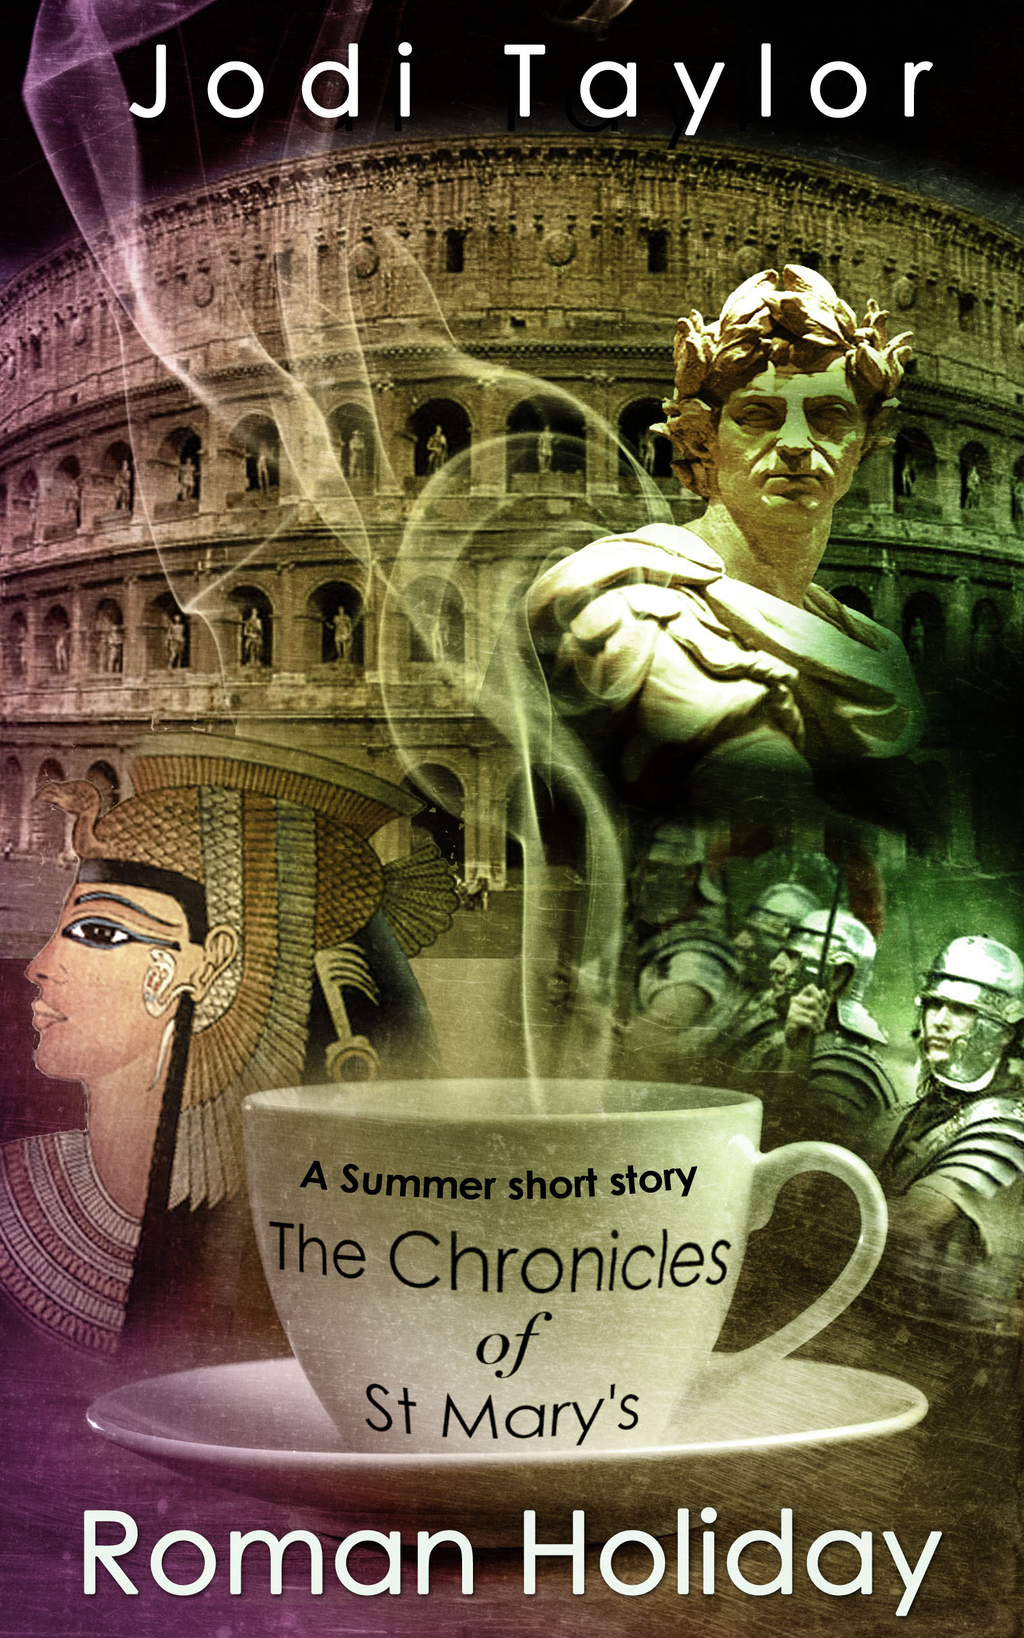 Roman Holiday The Chronicles of St. Mary's short story